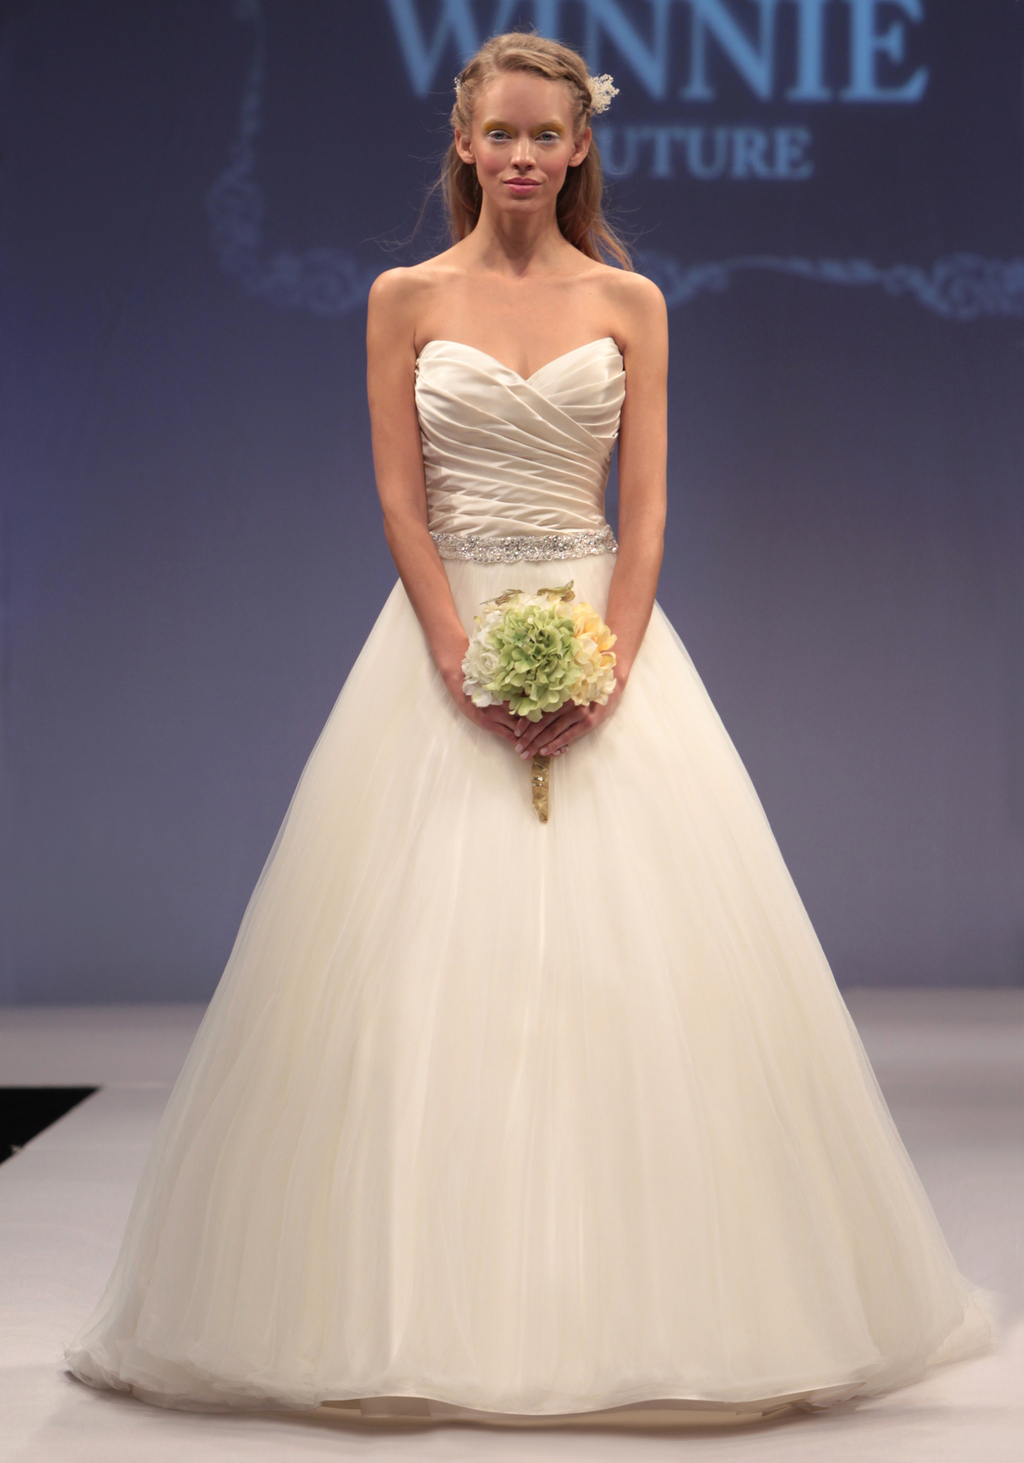 Winnie-couture-bridal-gown-spring-2013-wedding-dress-jeanette.full